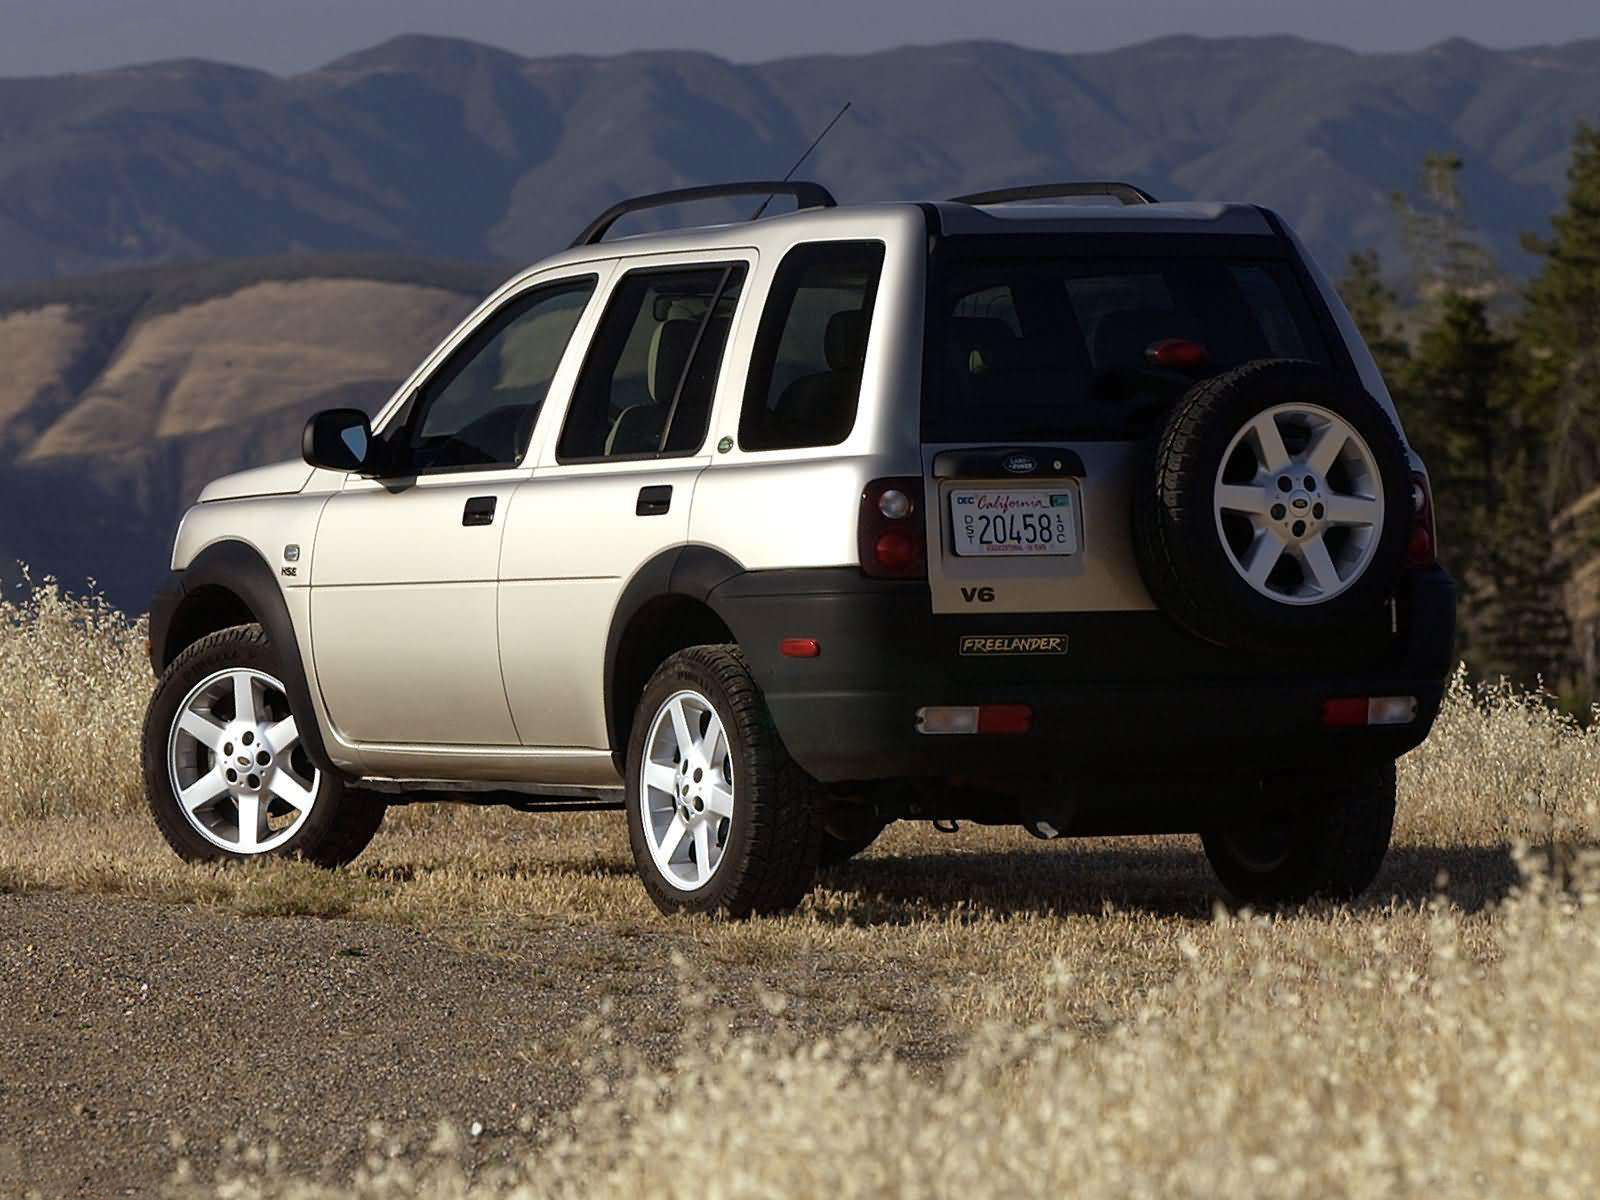 2003 land rover freelander rear view